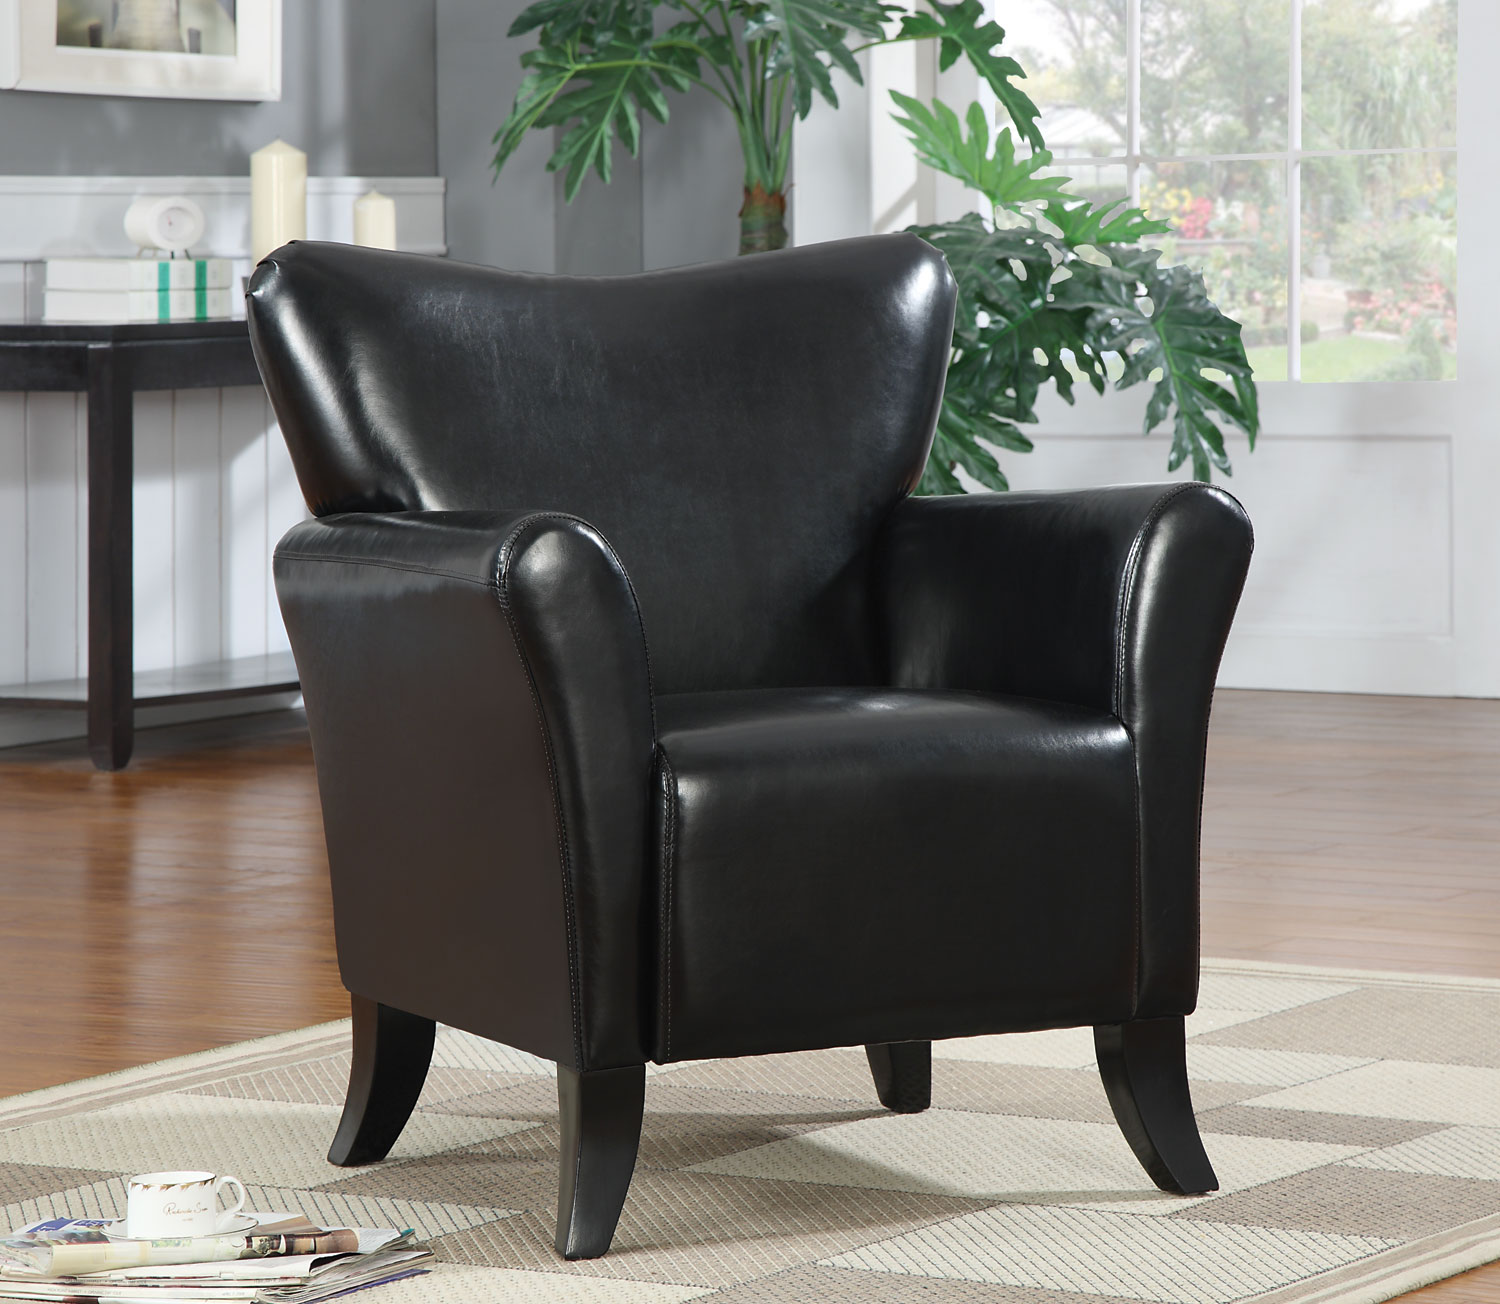 Black Faux Leather Accent Chair